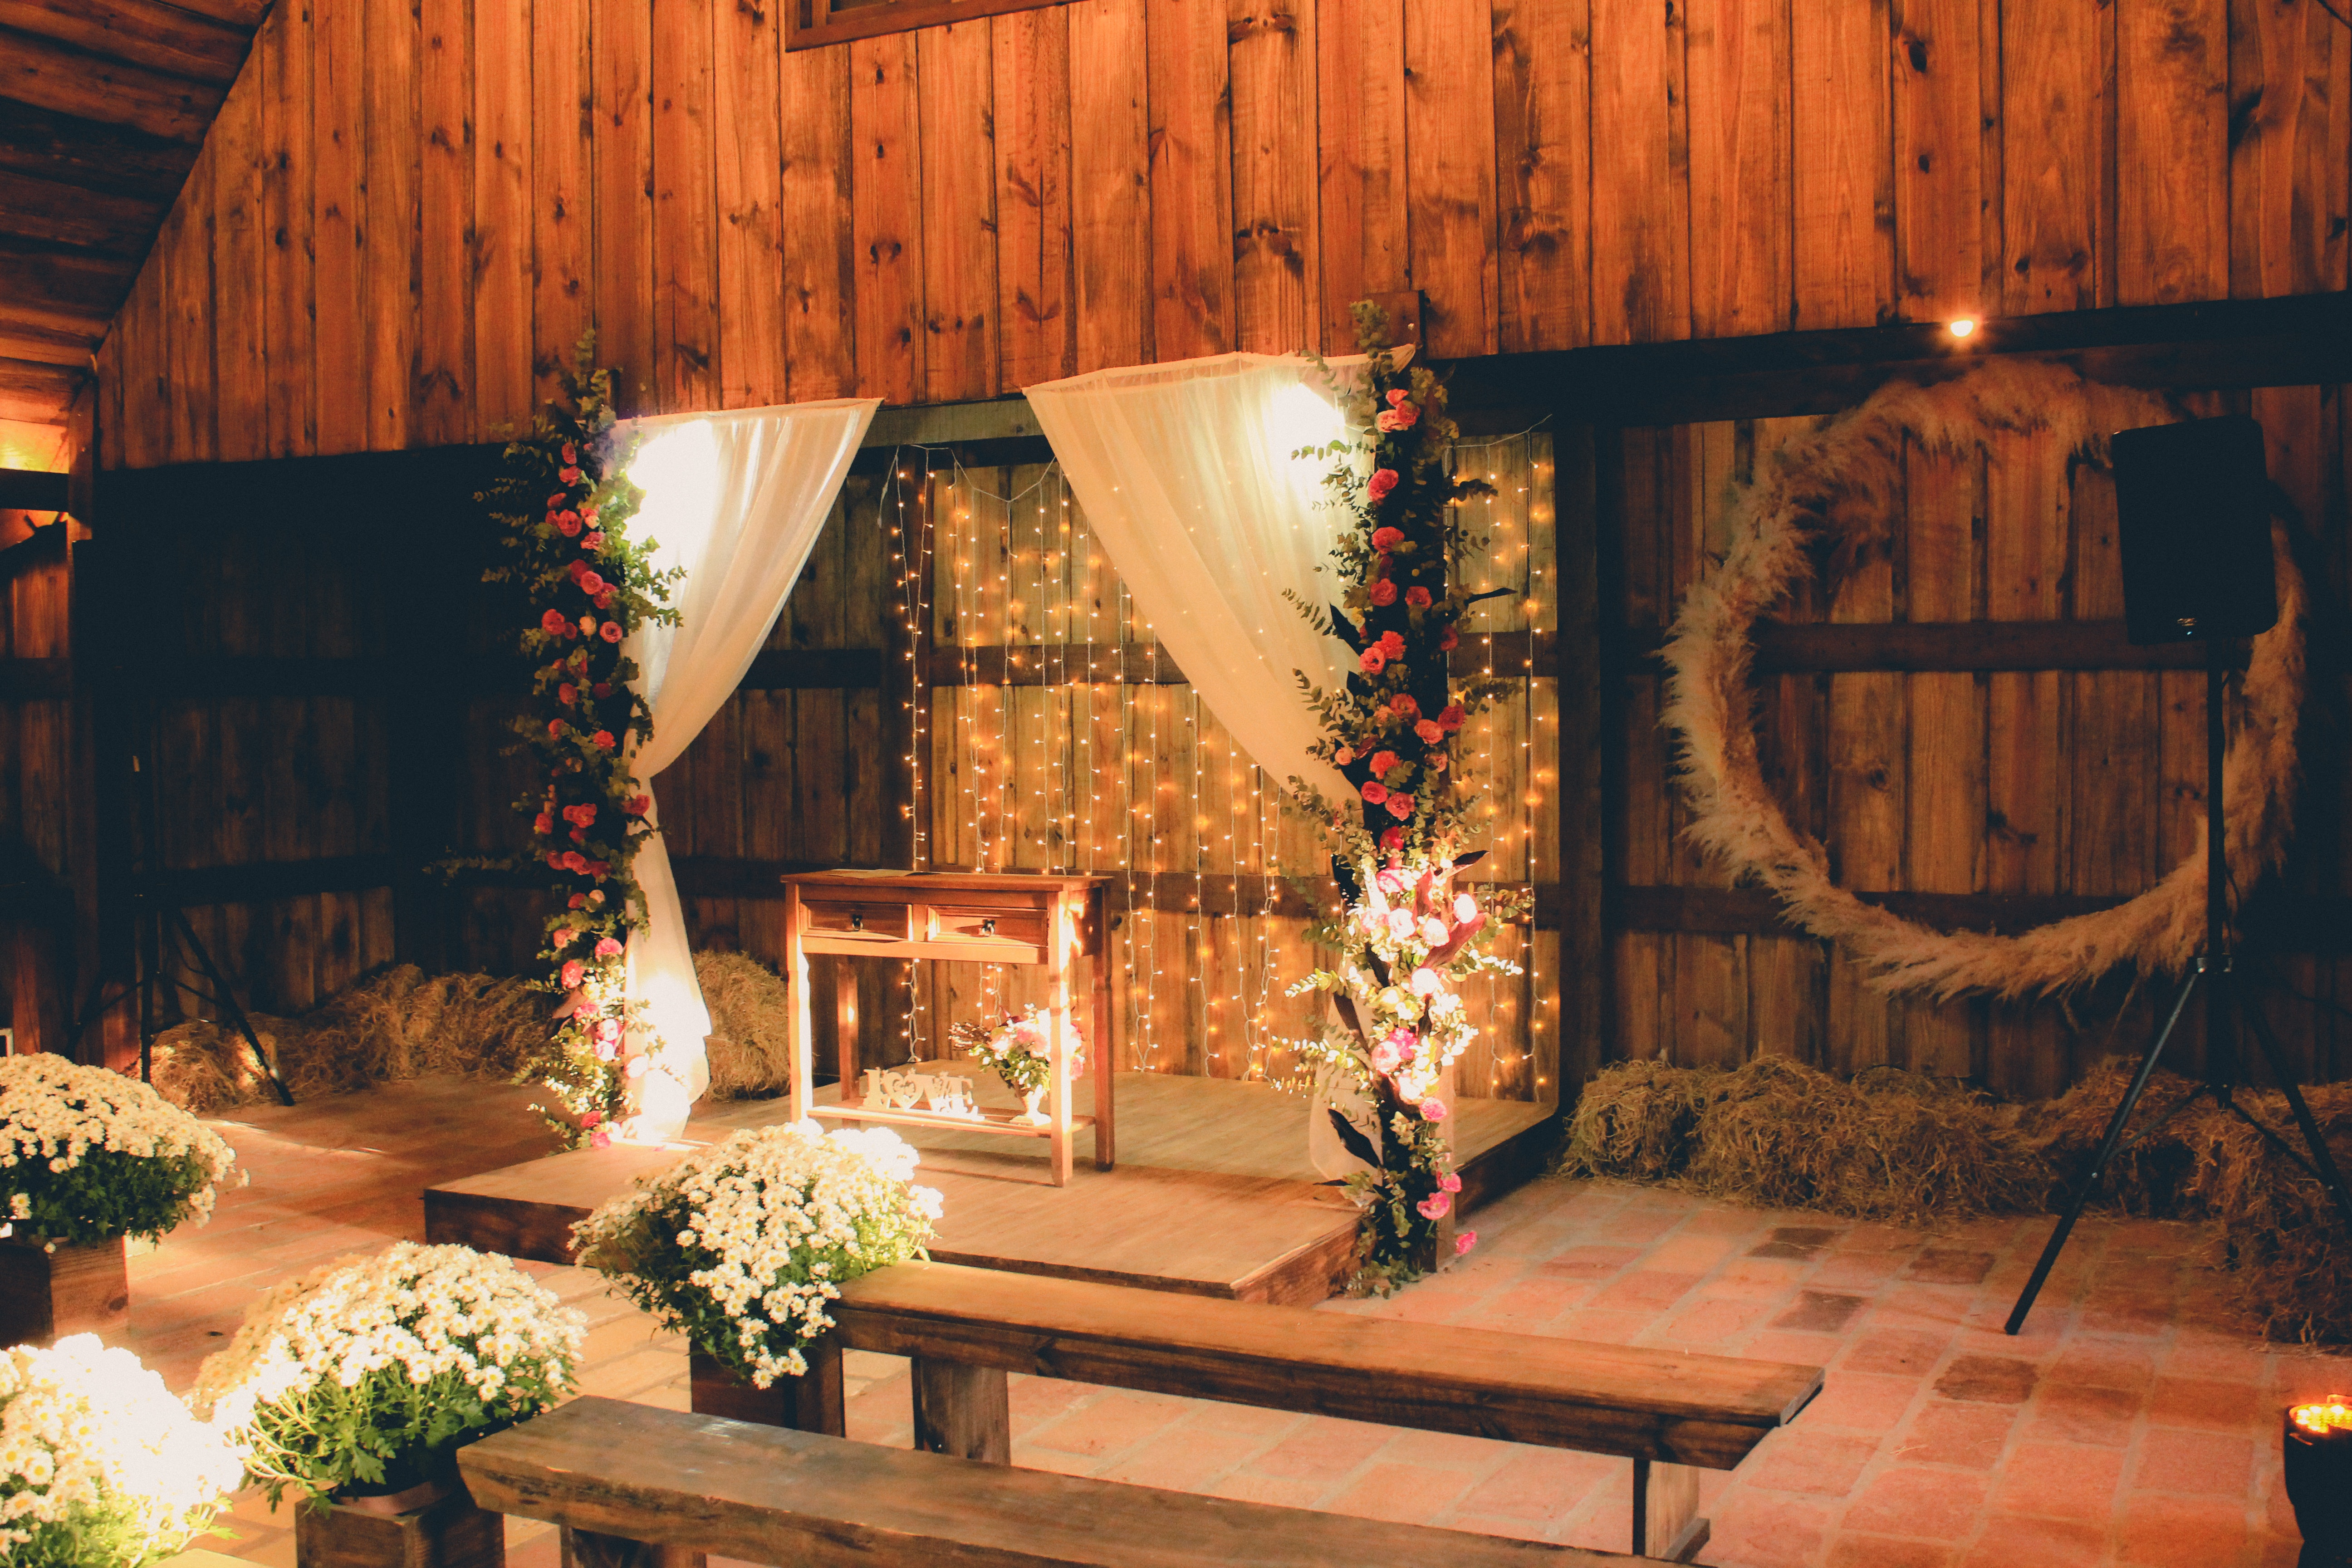 wedding-altar-set-up-2434255